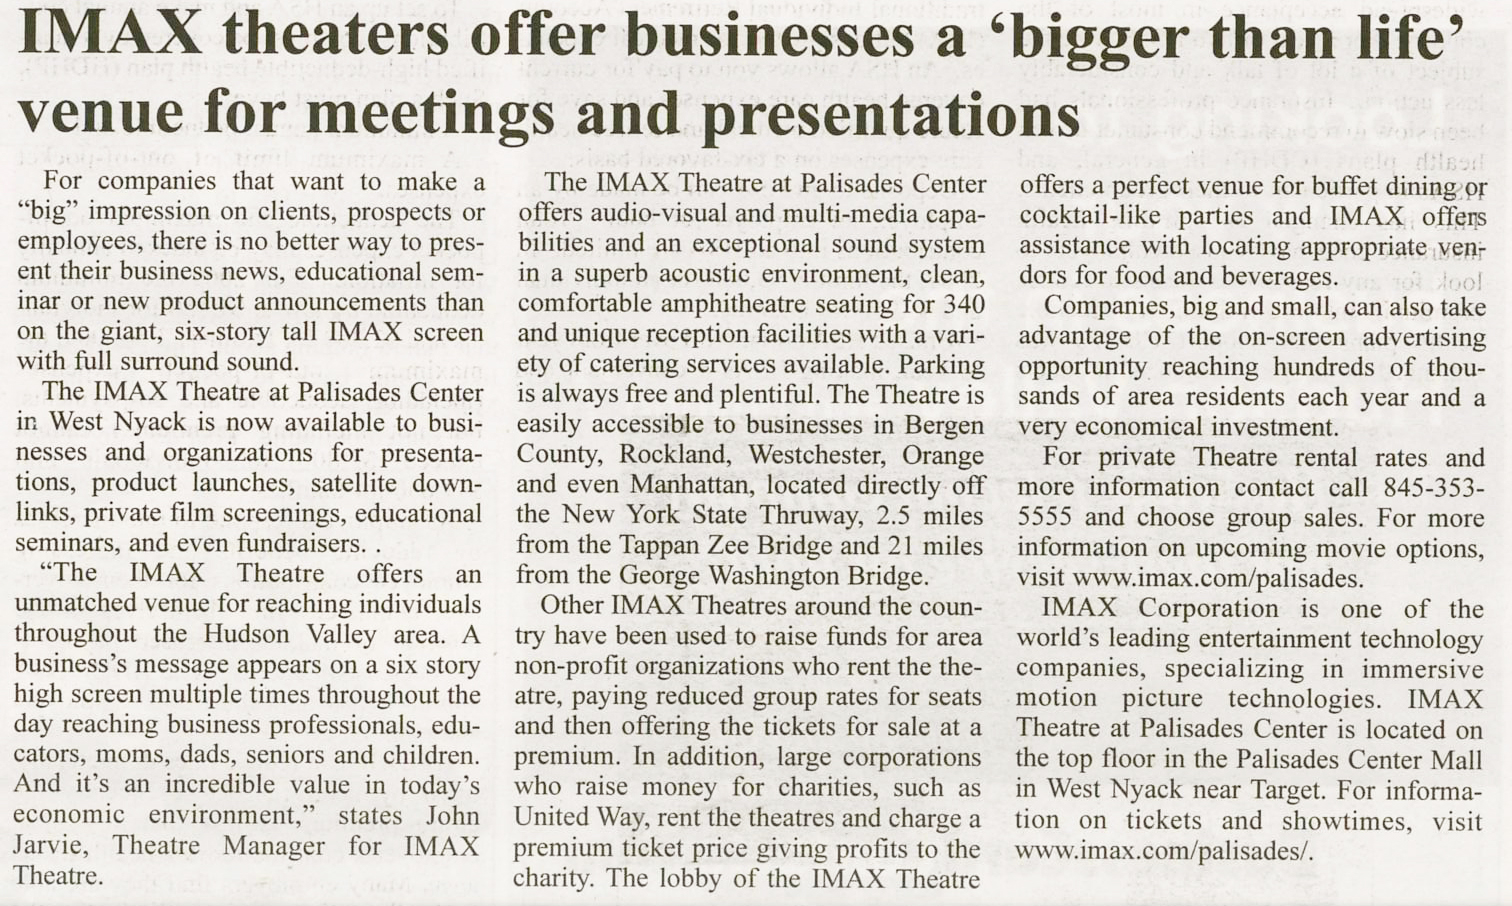 GMG Public Relations has provided a decade of creative marketing strategies for the IMAX Theatre.